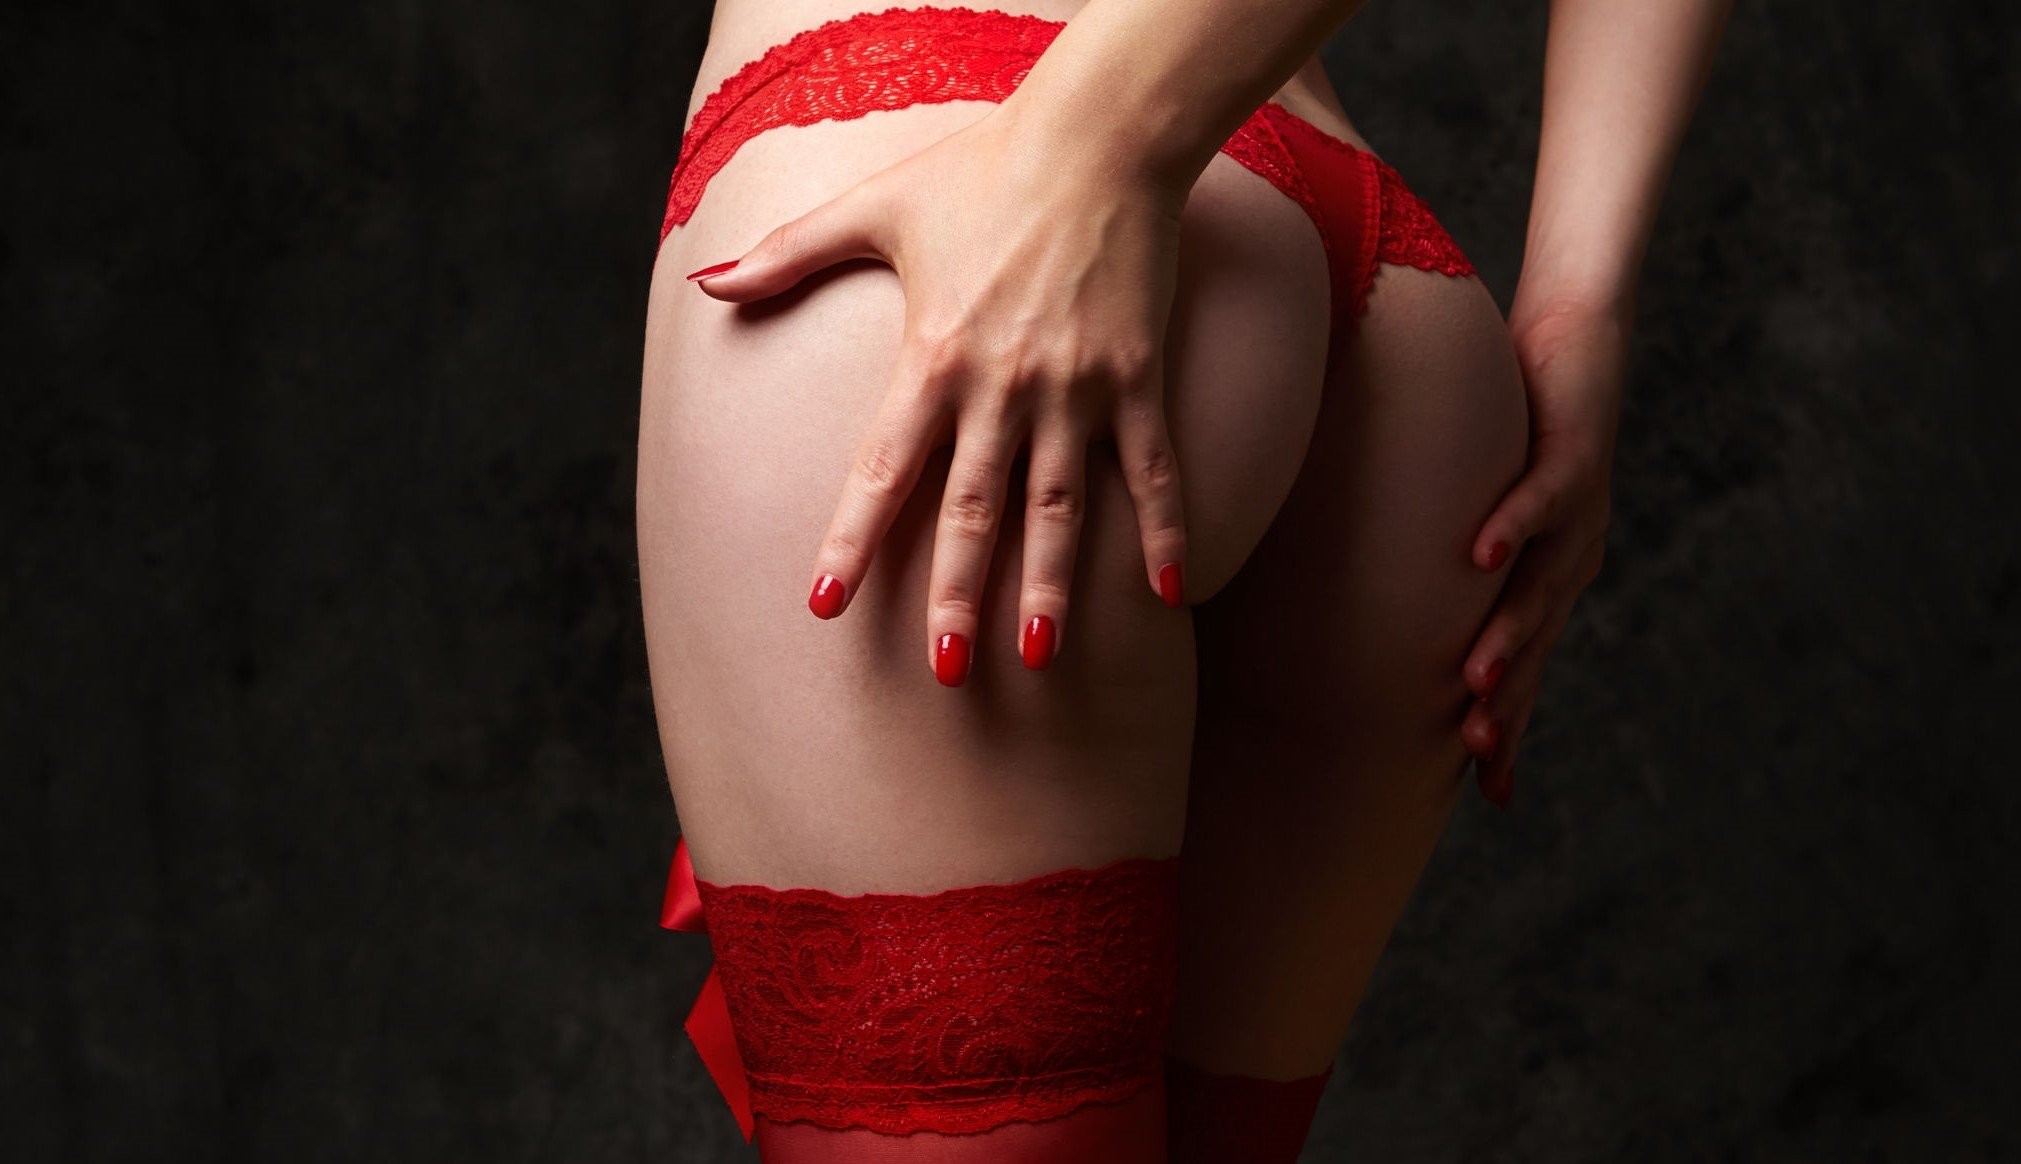 woman hand on bottom red lingerie